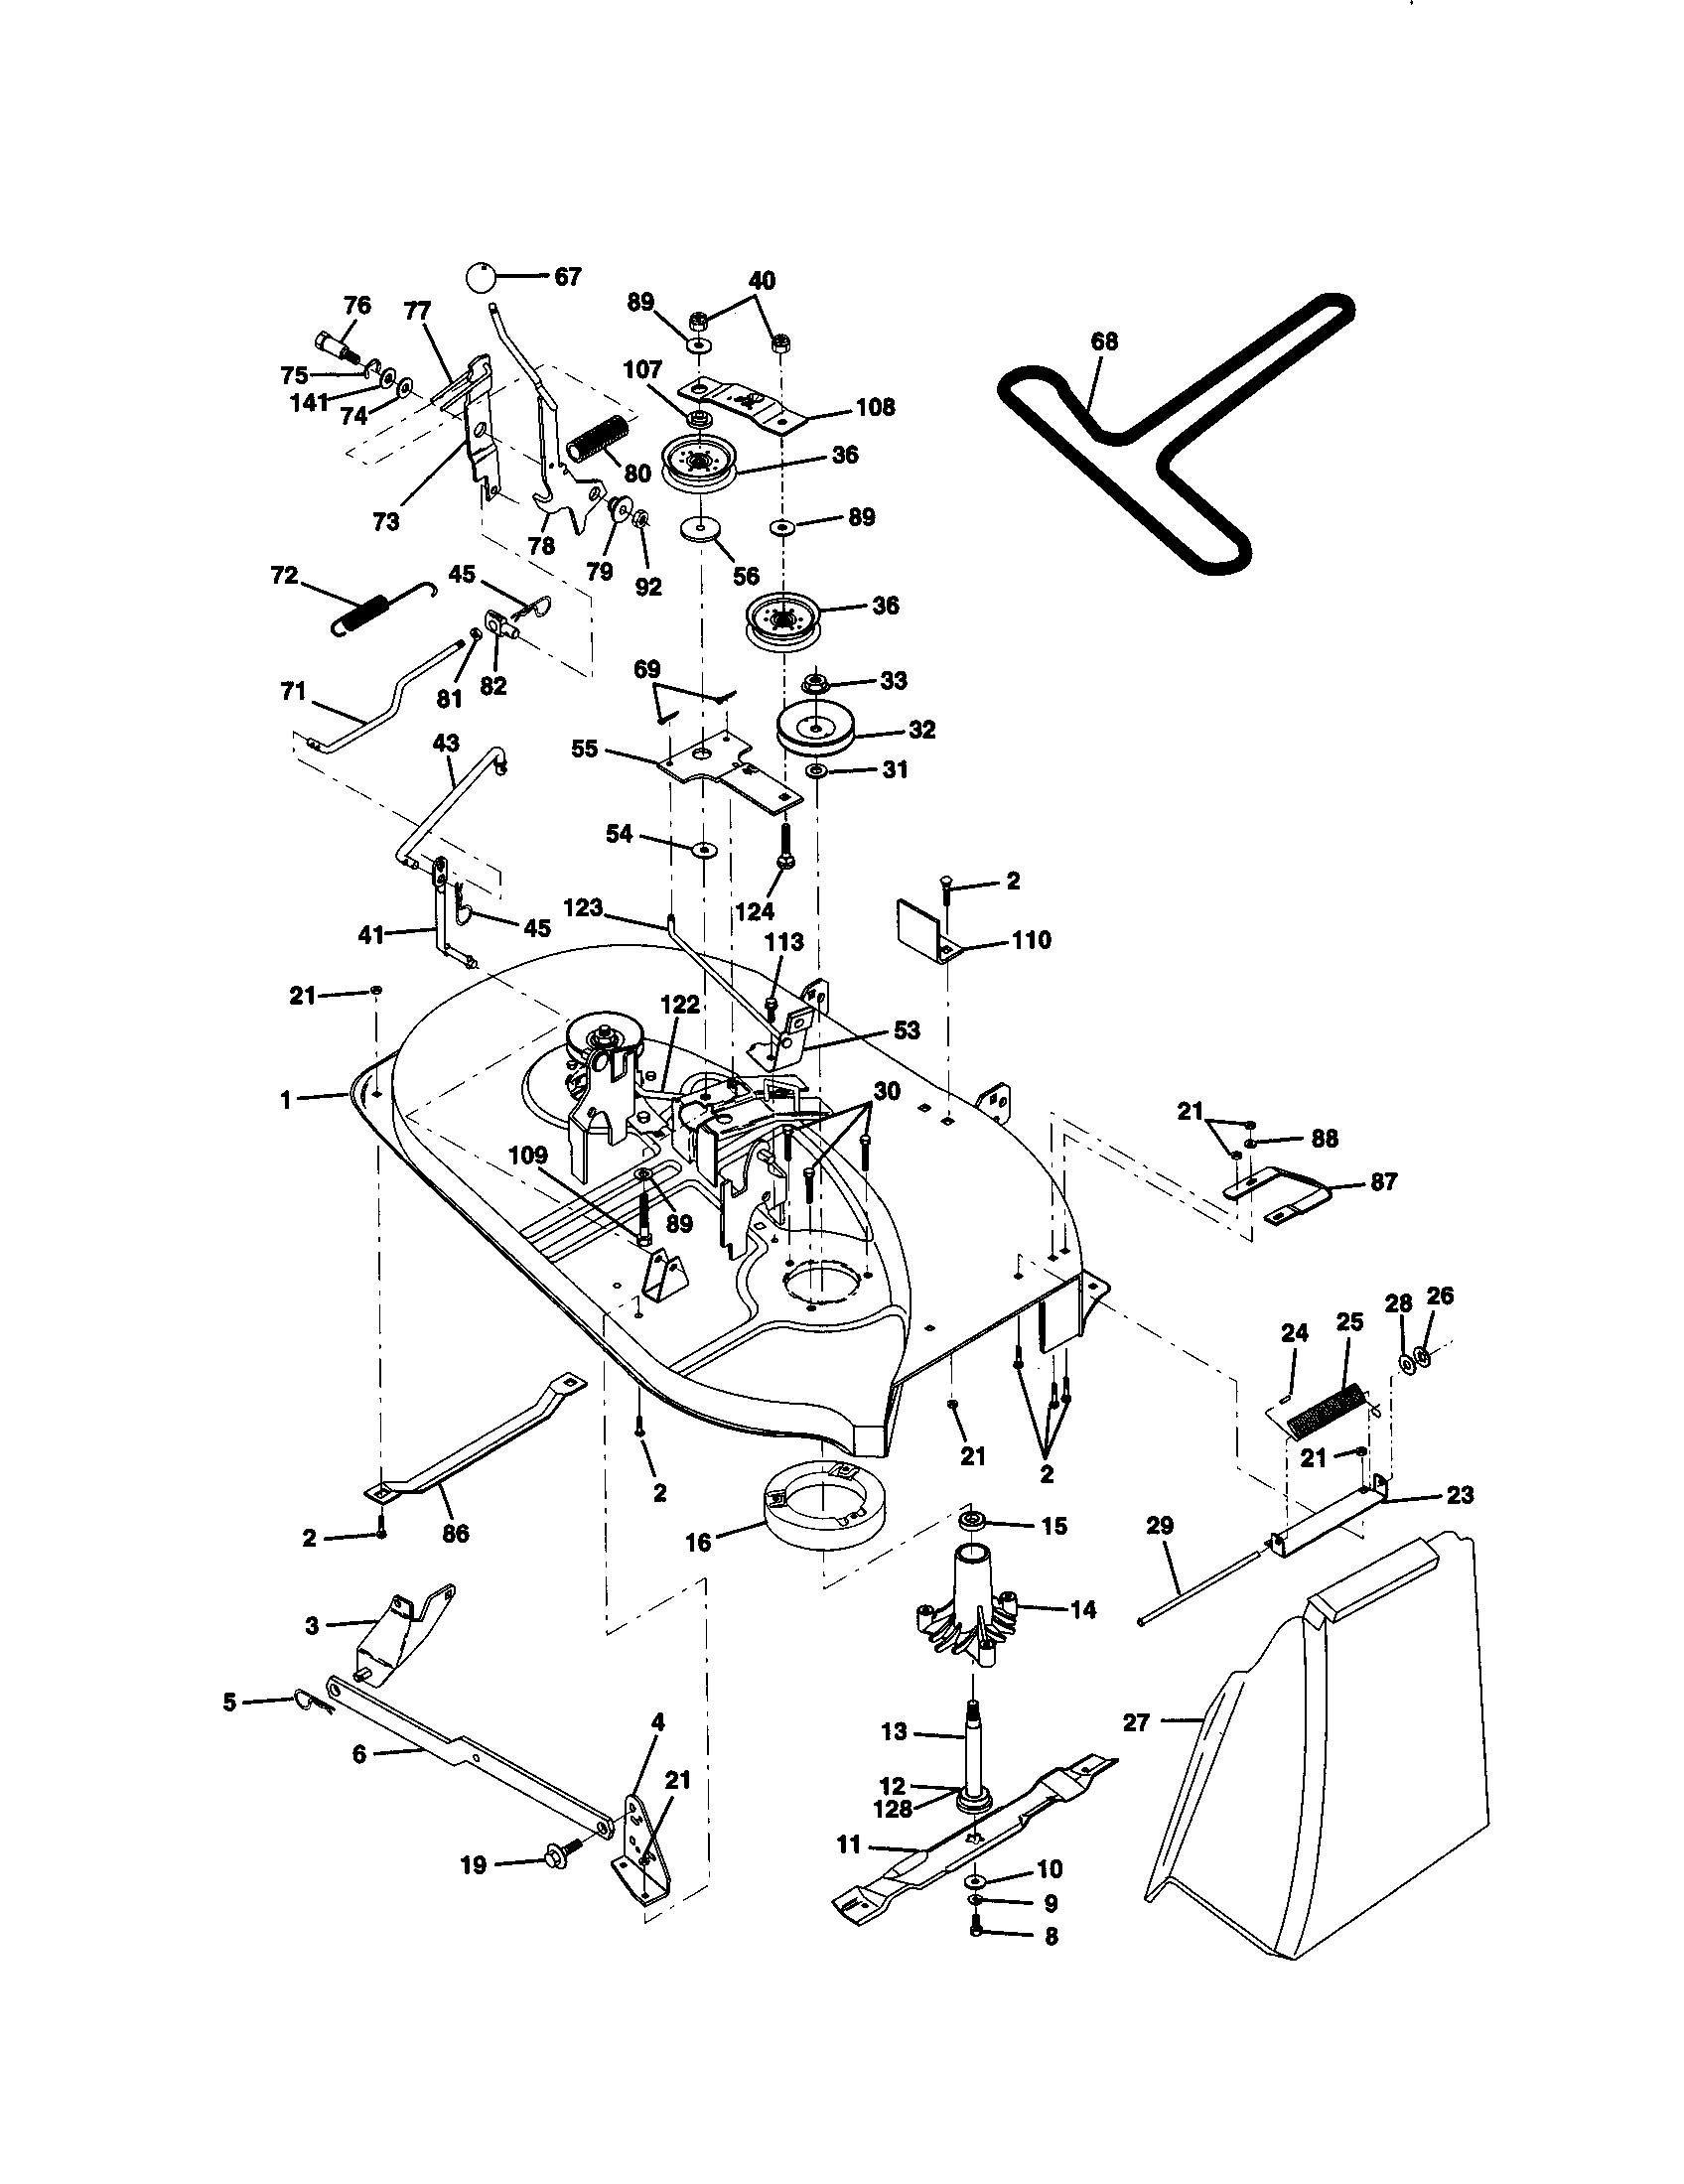 P8120262 00010?resize\\\\\\\=665%2C863 briggs and stratton wiring diagram & 16 hp vanguard wiring 16 hp briggs and stratton wiring diagram at crackthecode.co